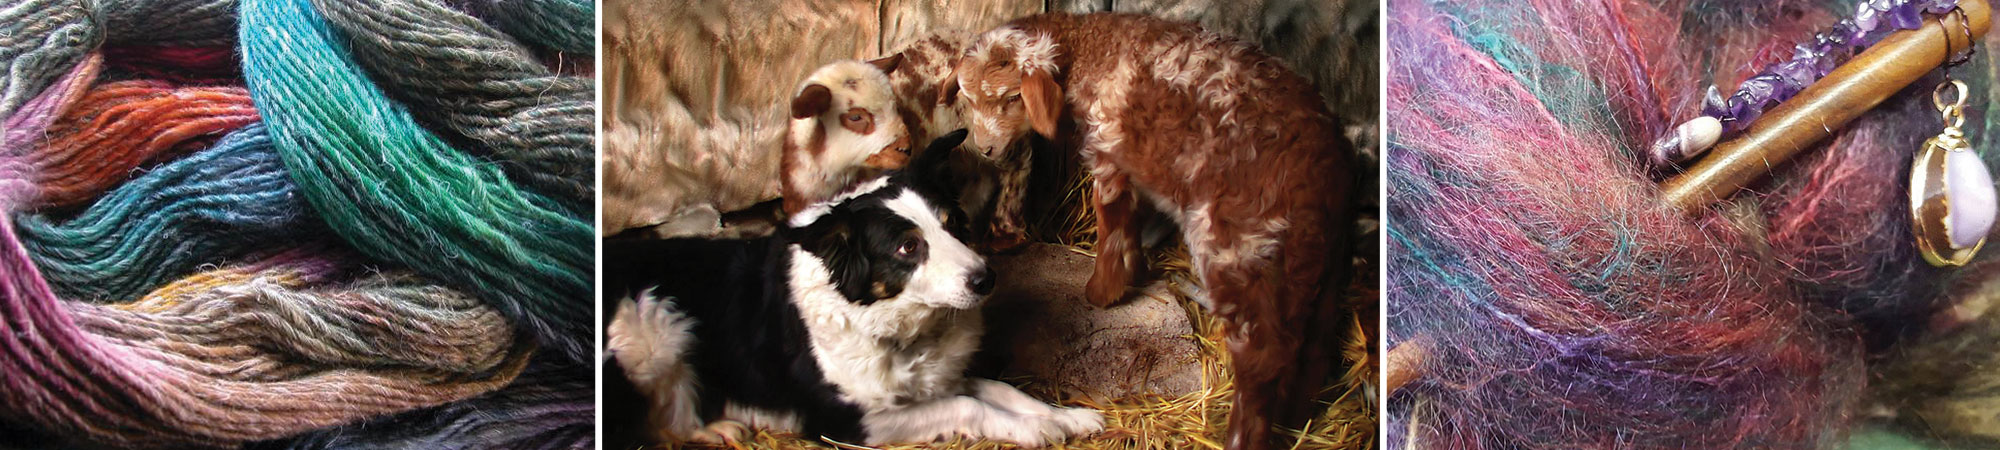 Herding Dog with Lambs and Wool